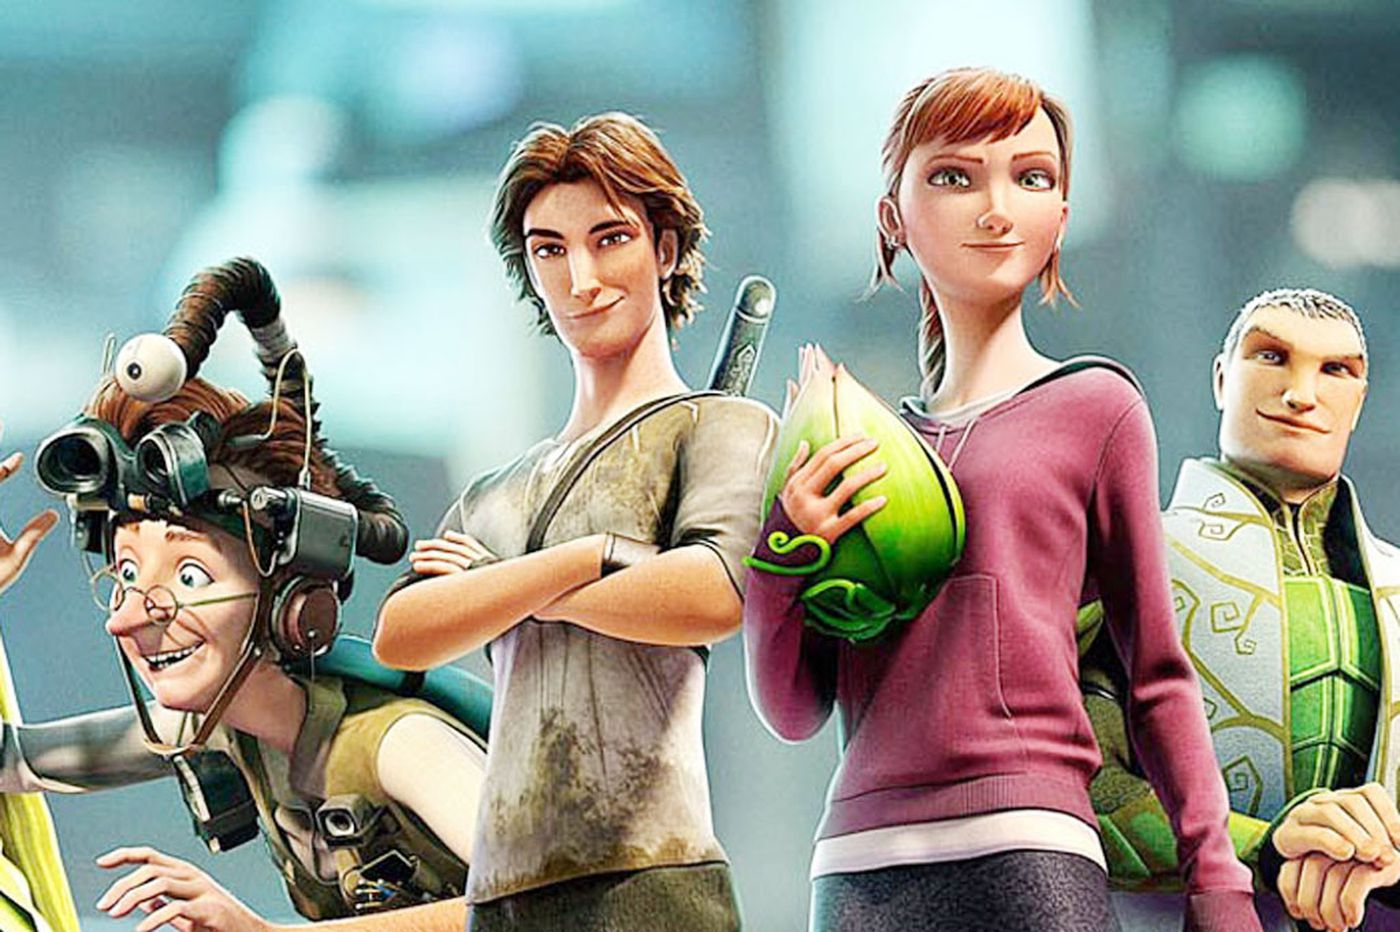 'Epic' not a new leaf for animation